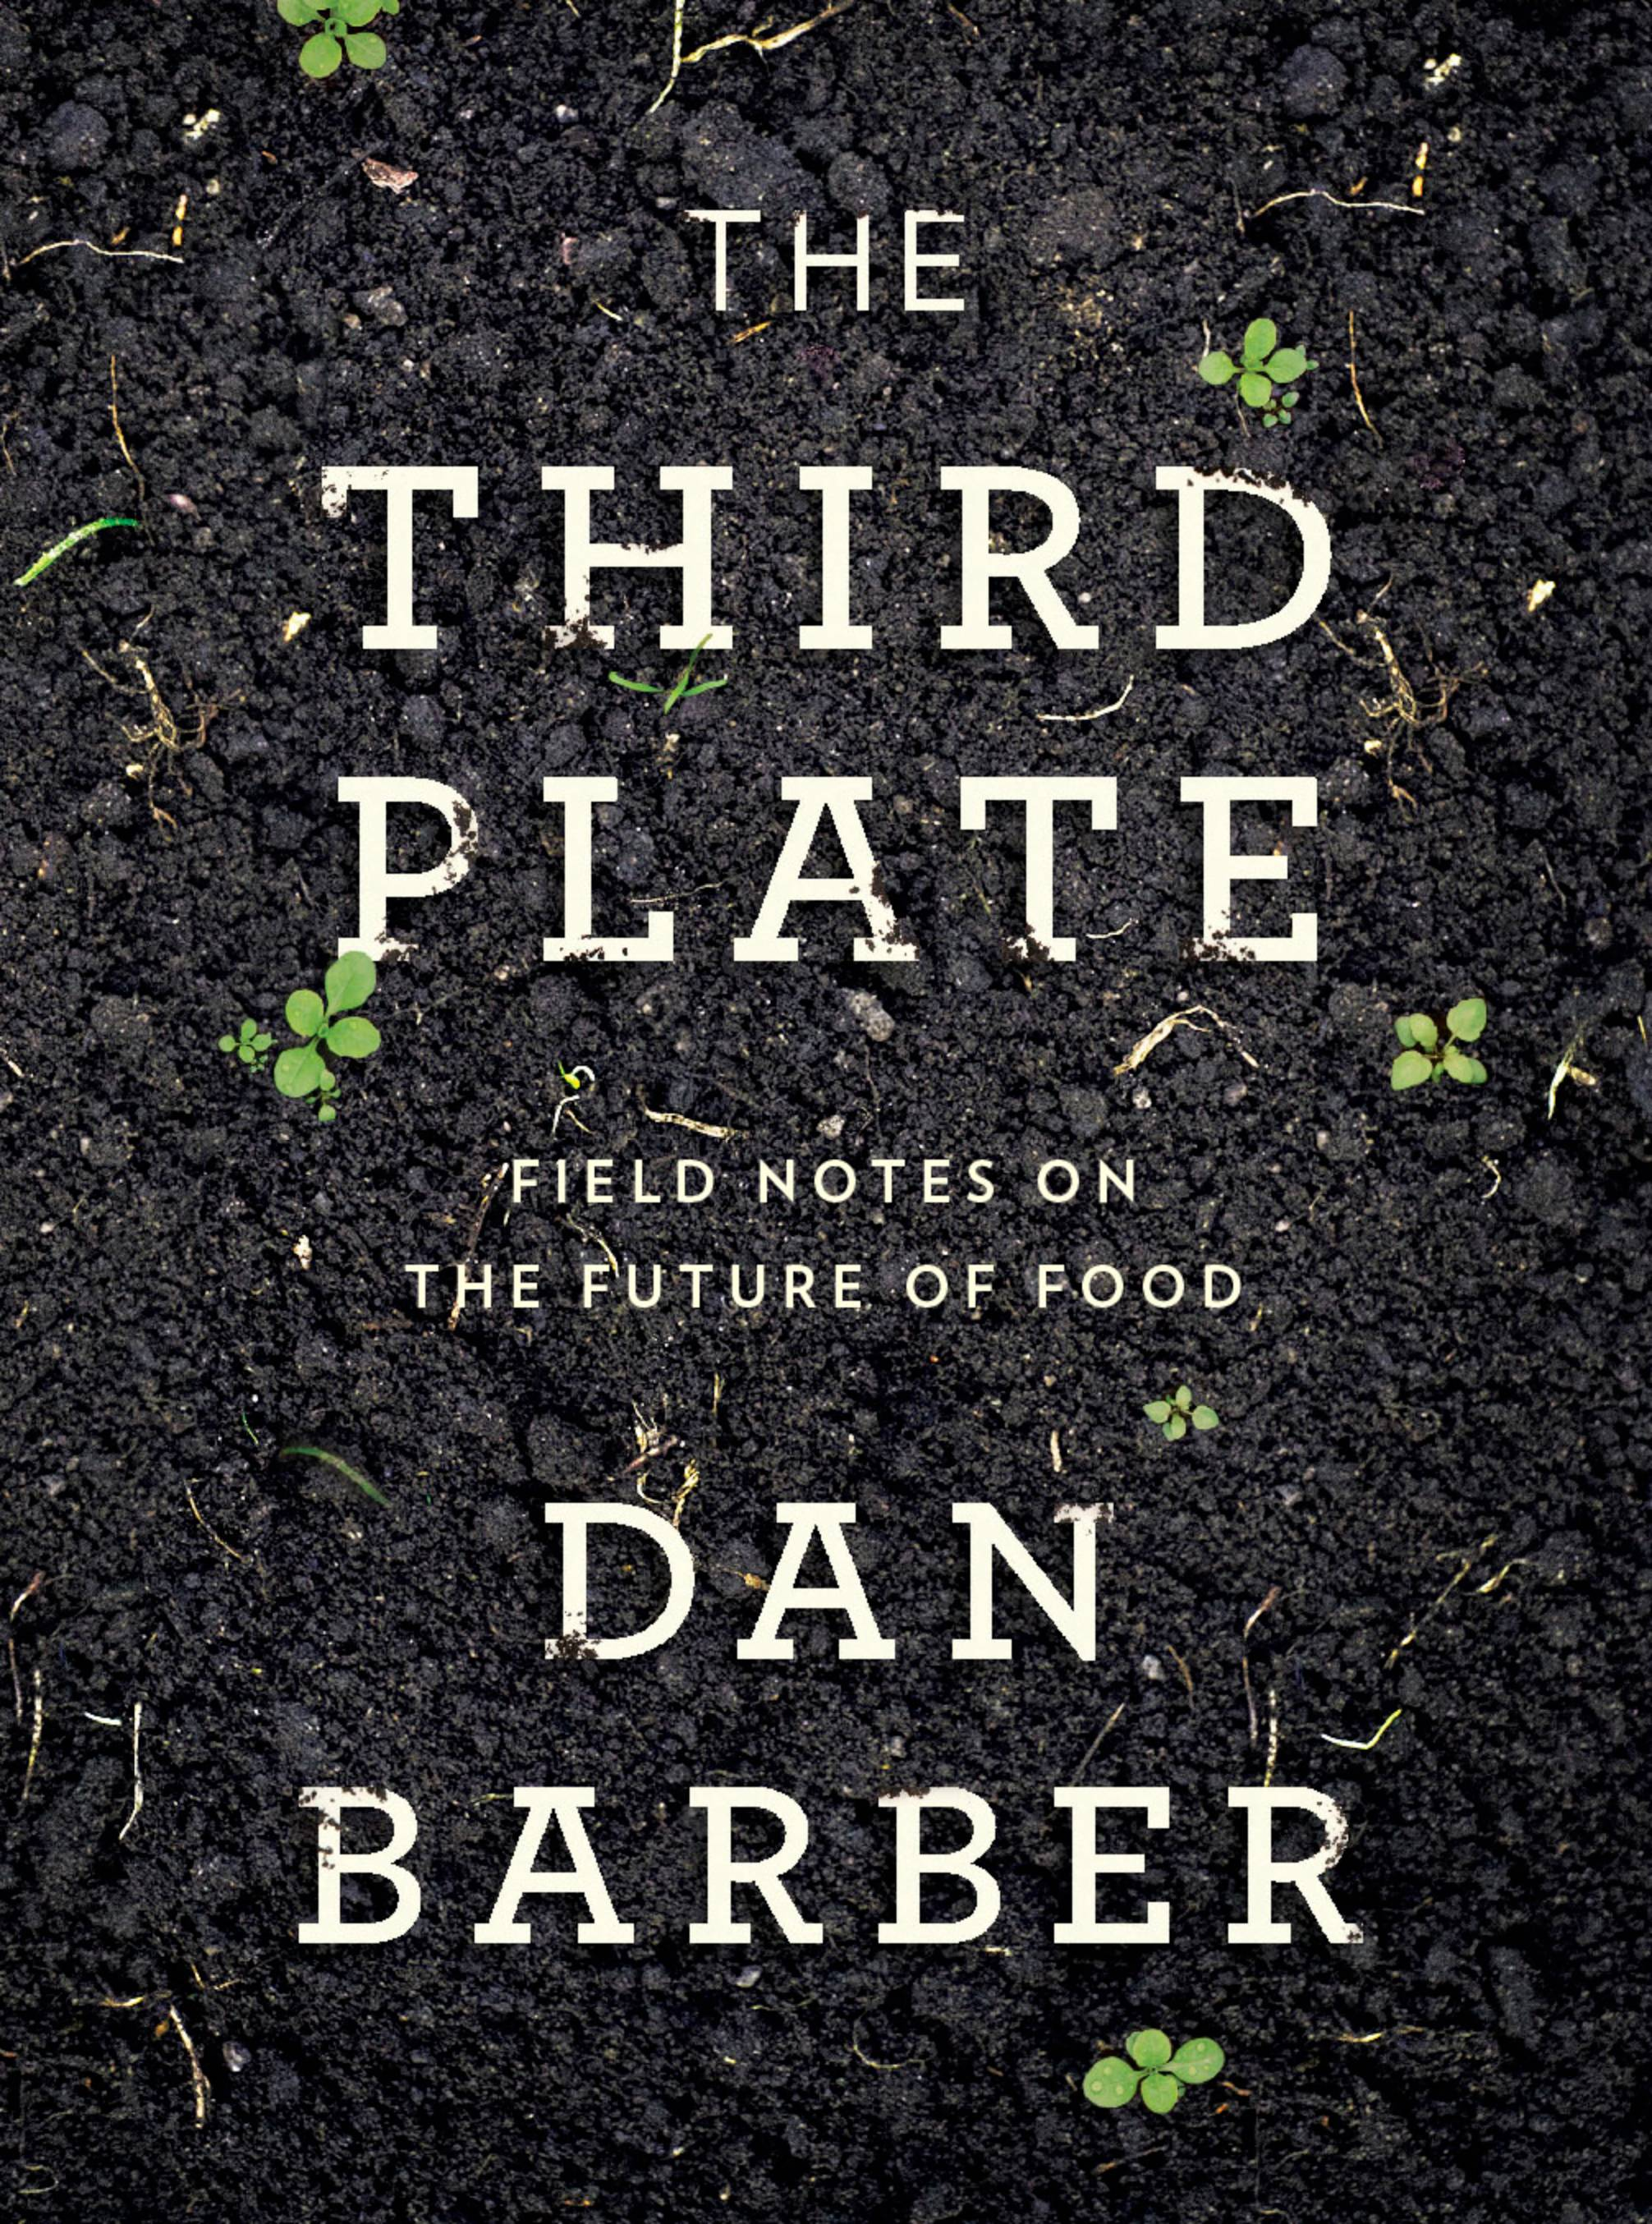 """The Third Plate: Field Notes on the Future of Food"" by Dan Barber (The Penguin Press)"